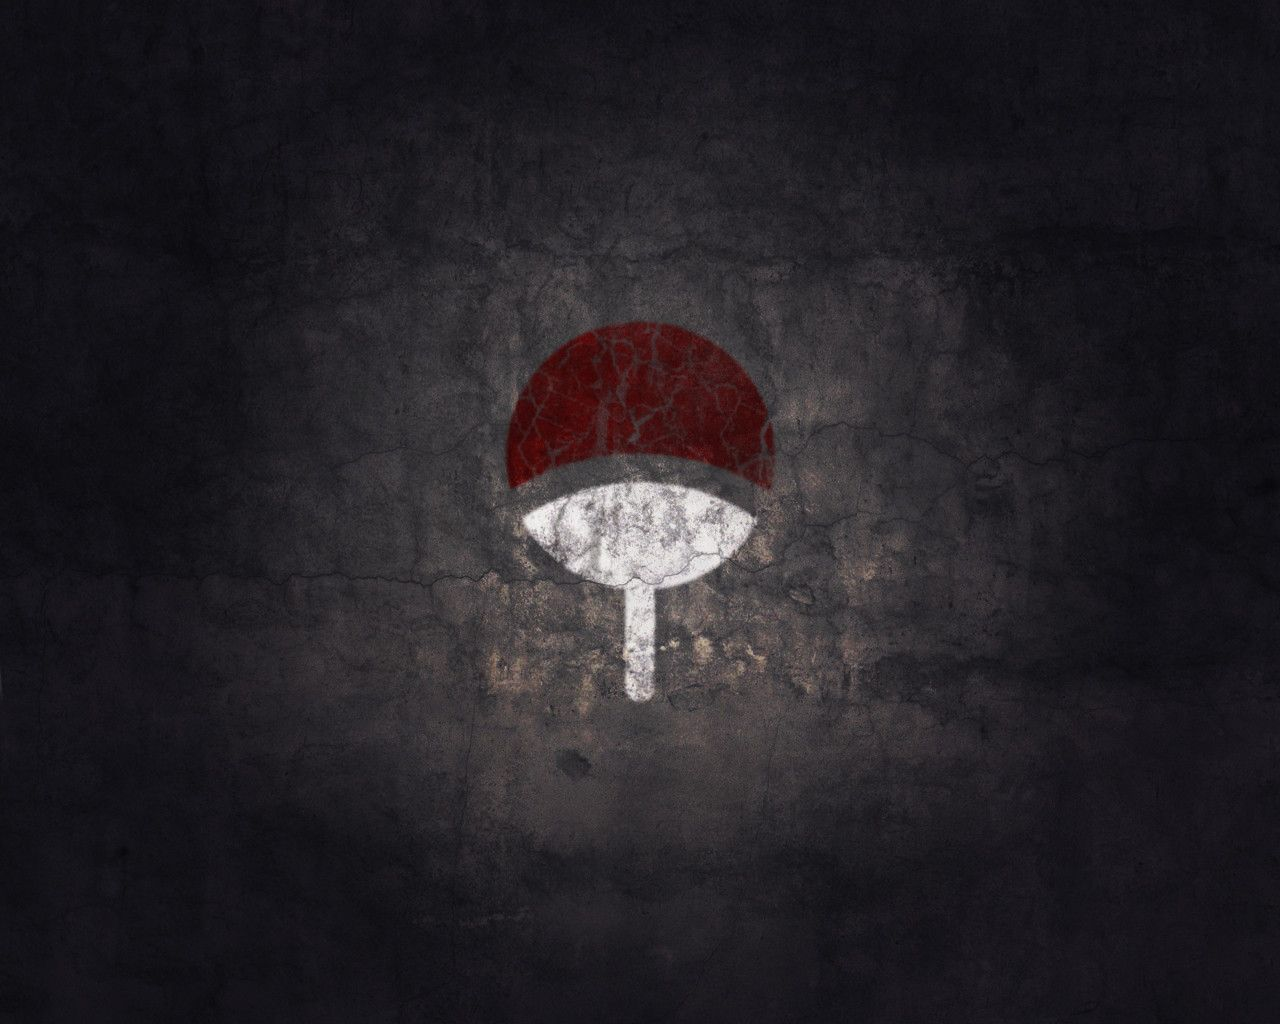 Uchiha Clan Symbol Wallpaper Wallpaper HD Resolution   dlwallhdcom 1280x1024